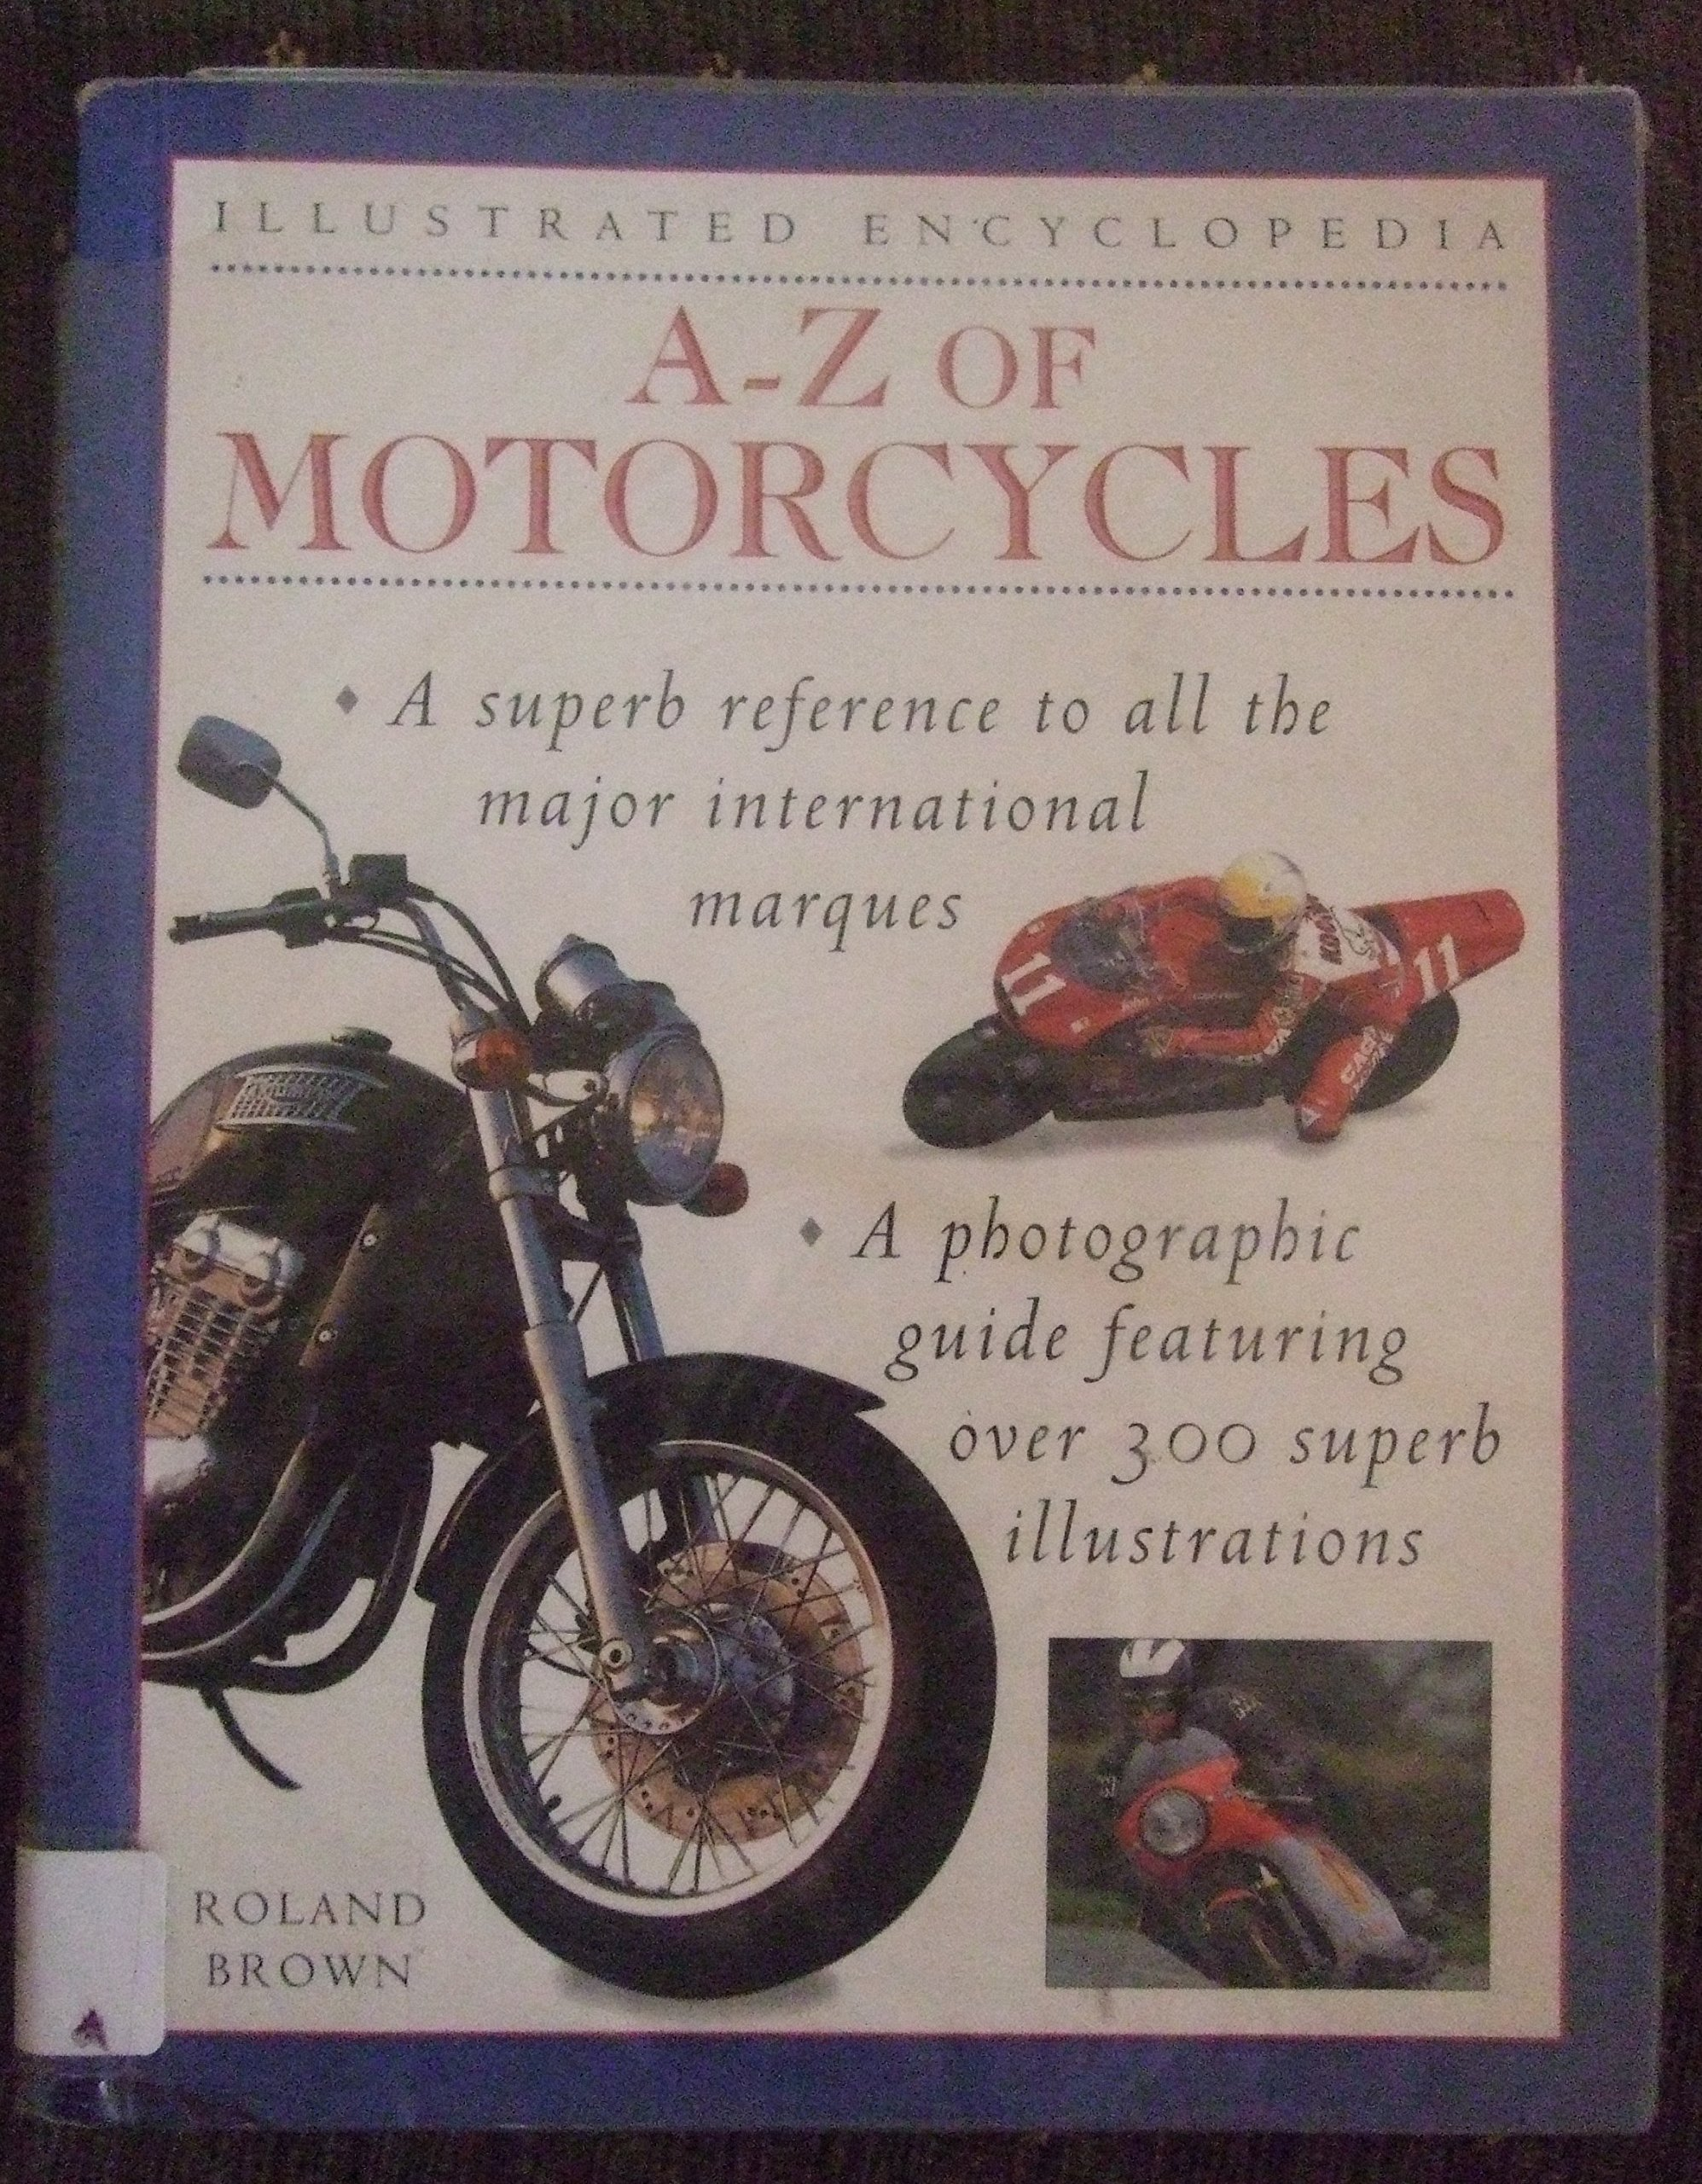 ILLUSTRATED ENCYCLOPEDIA: A-Z OF MOTORCYCLES: ROLAND BROWN: 9781840388244:  Amazon.com: Books